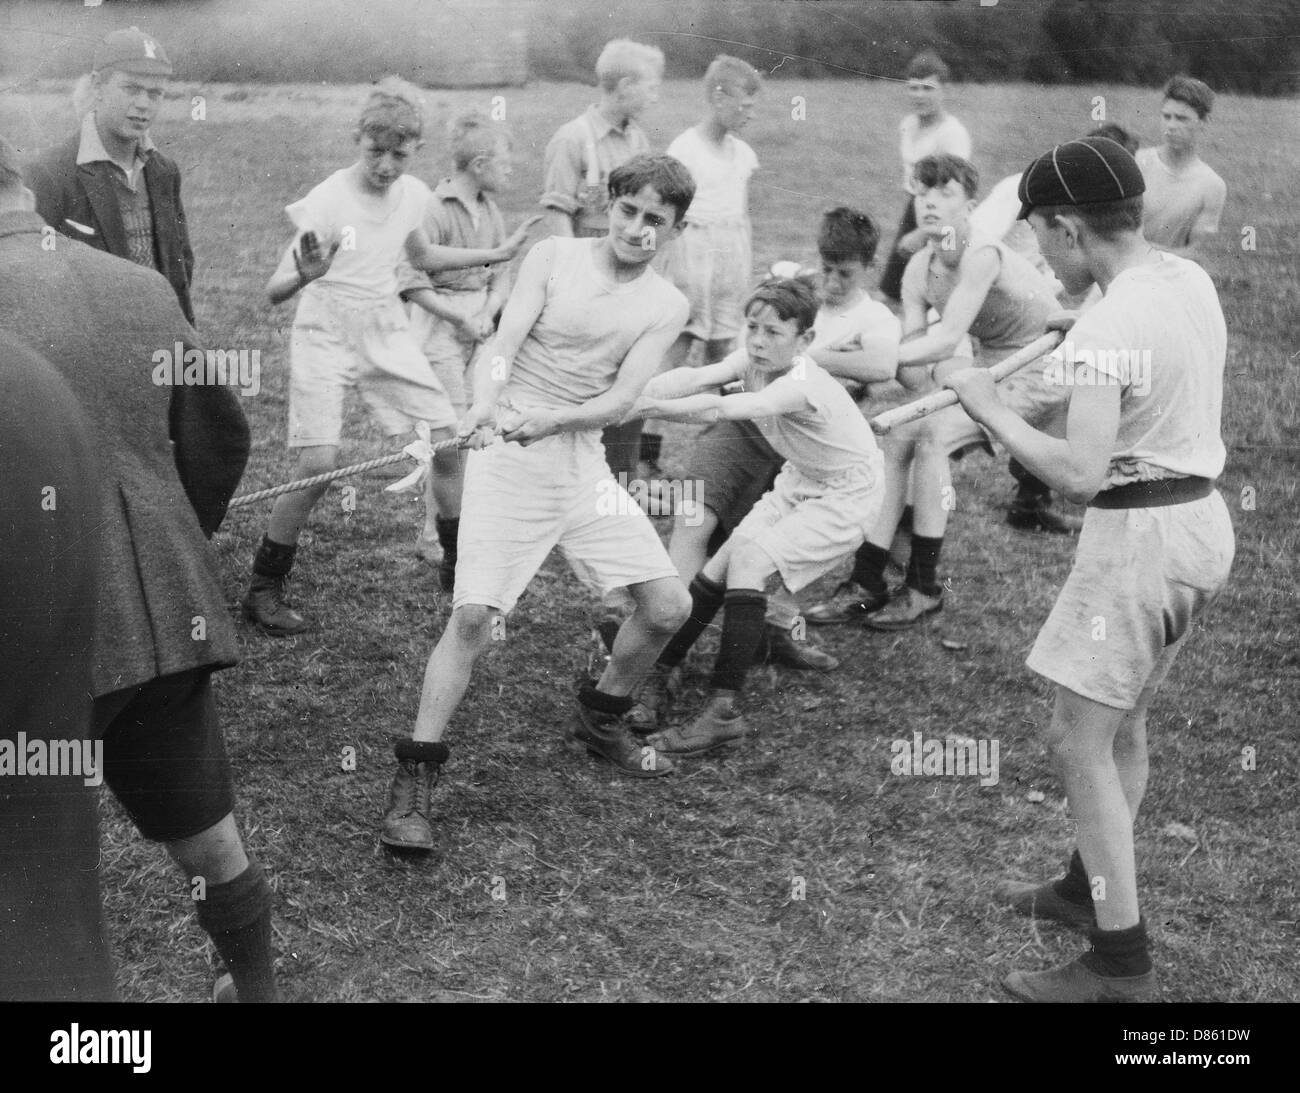 Boys Club Tug Of War Circa 1930 - Stock Image